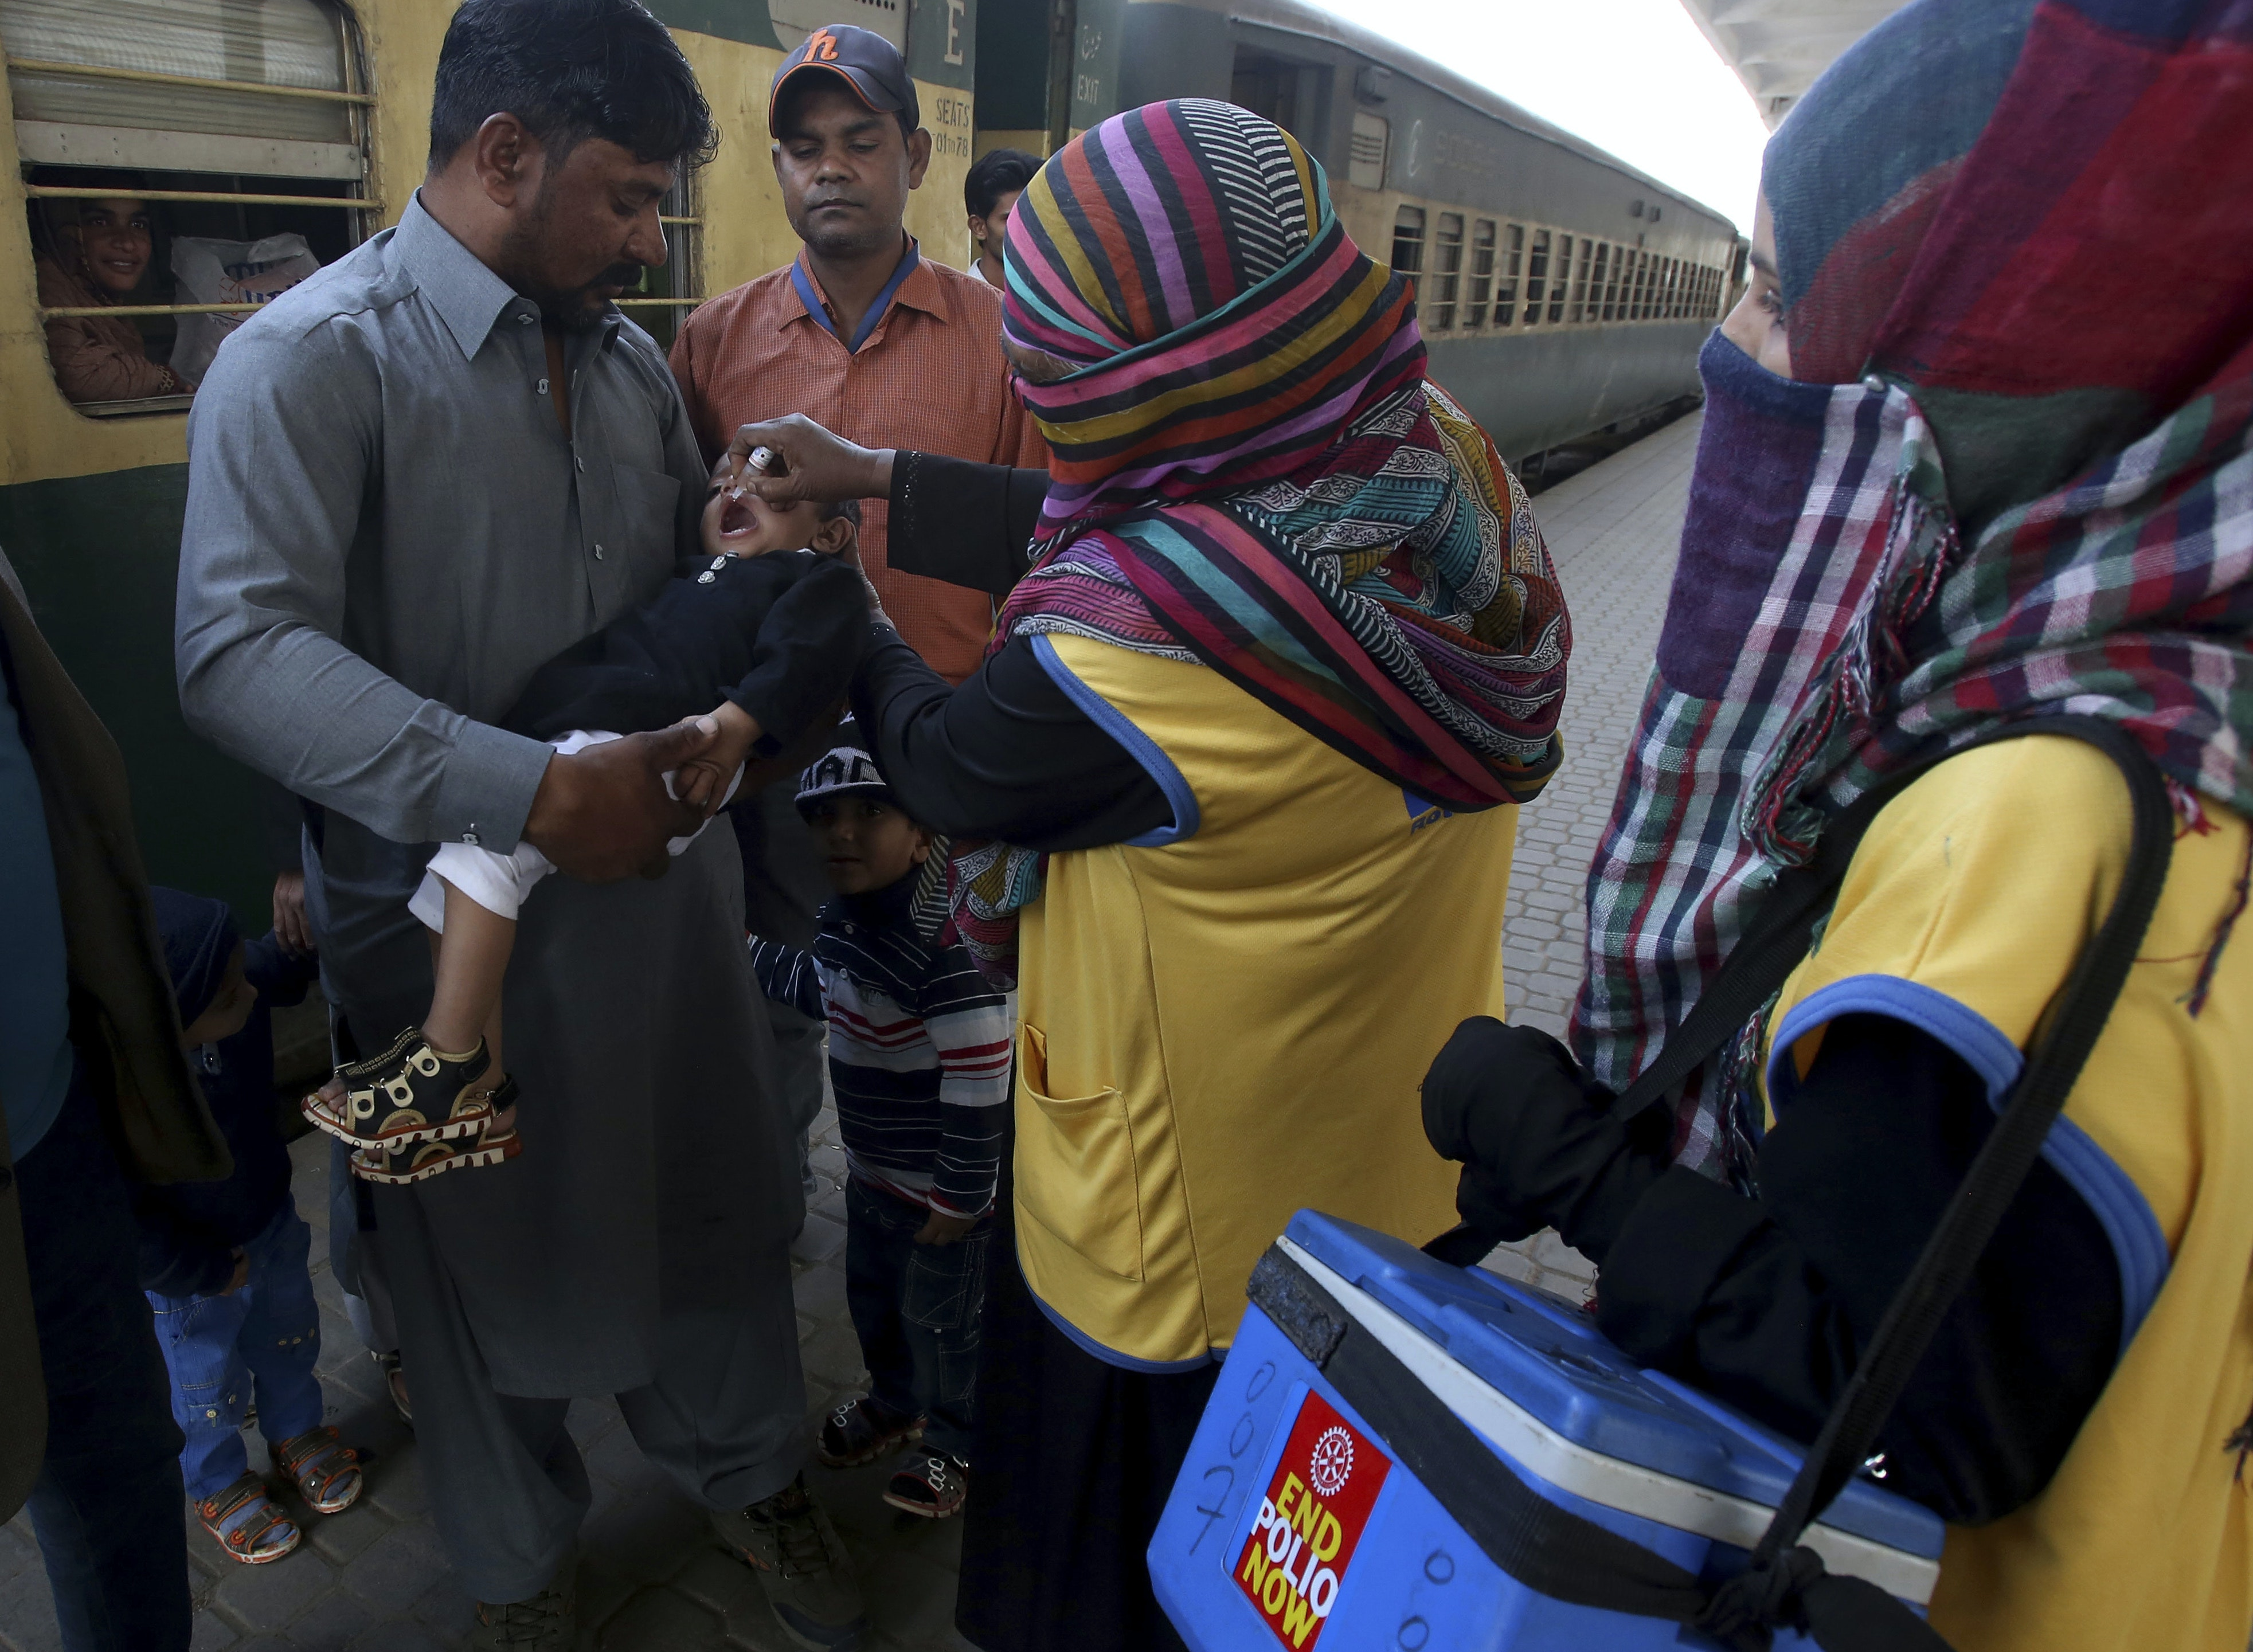 A health worker gives a polio vaccine to a child at a railway station in Pakistan. AP Photo/Fareed Khan